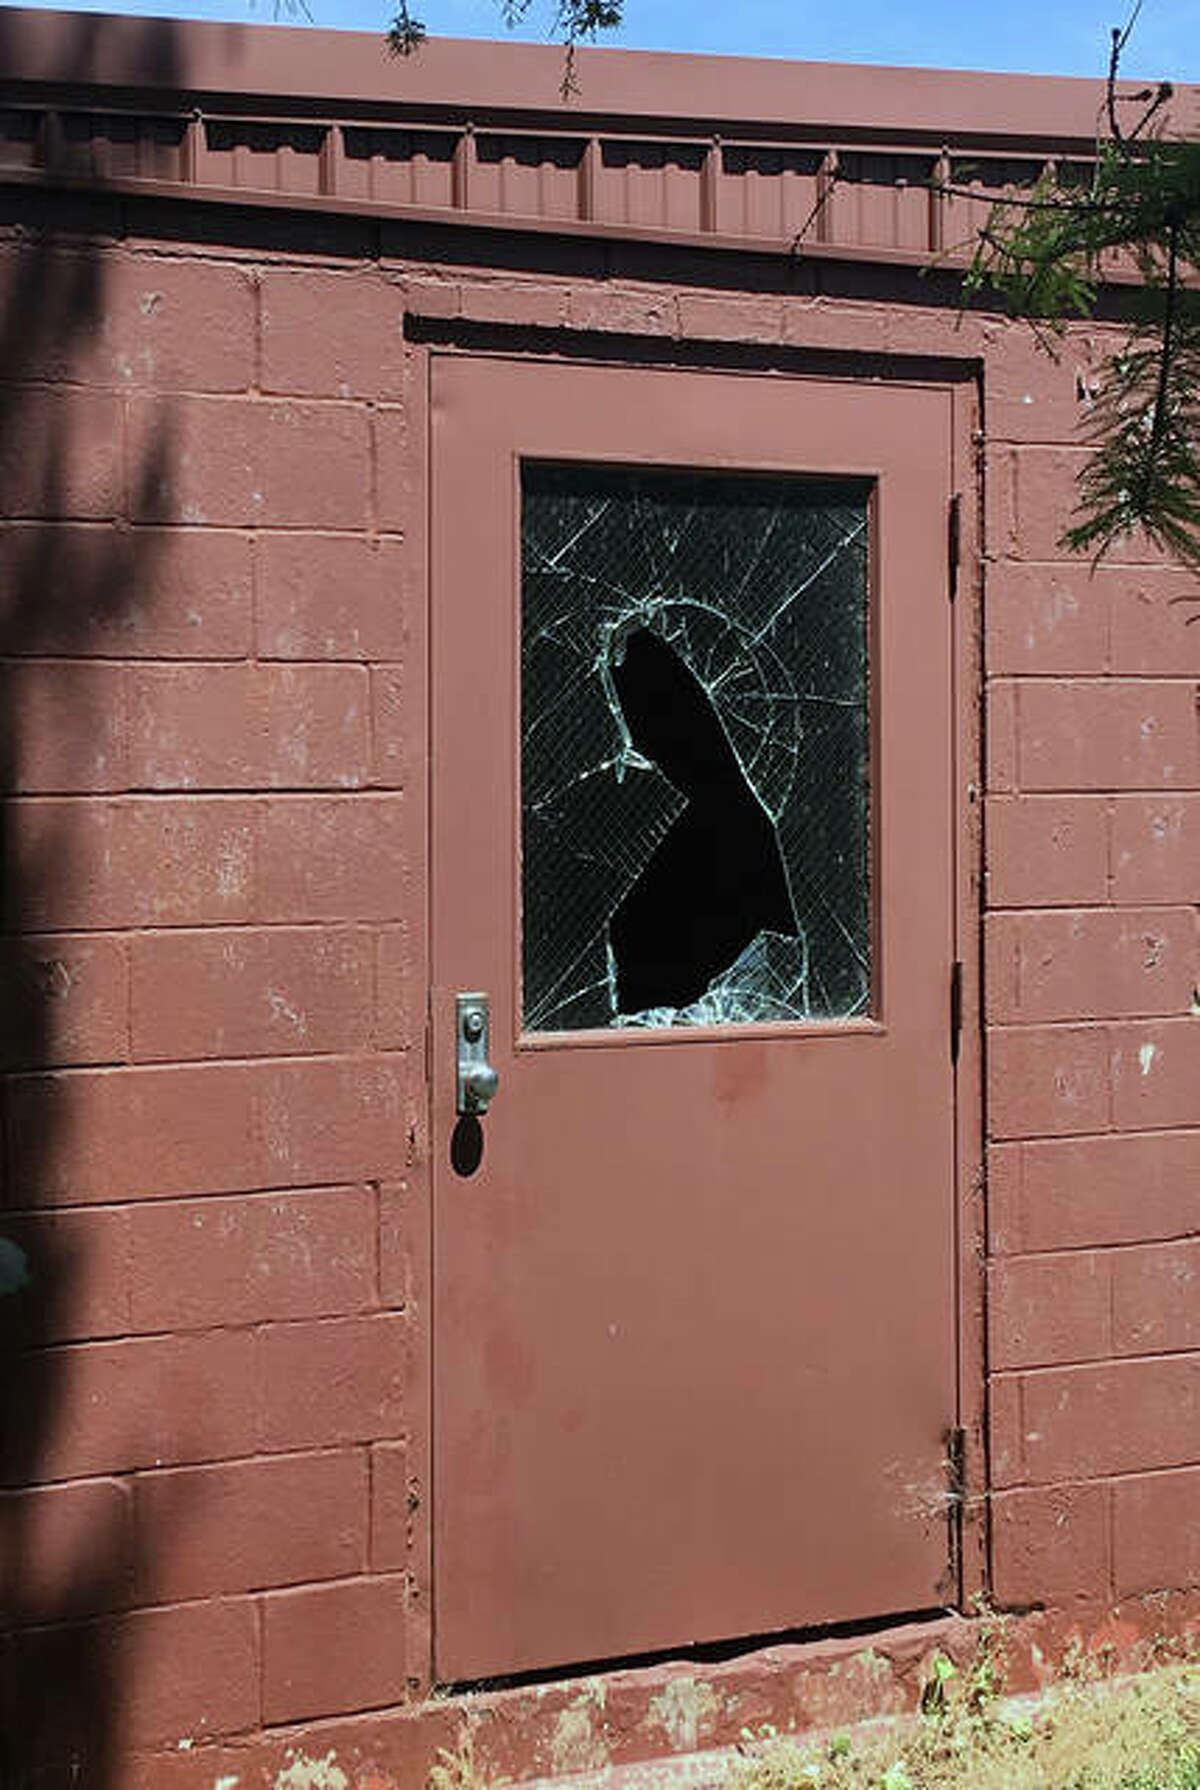 Some of the damage done on the grounds of the former Jacksonville Developmental Center includes broken windows.